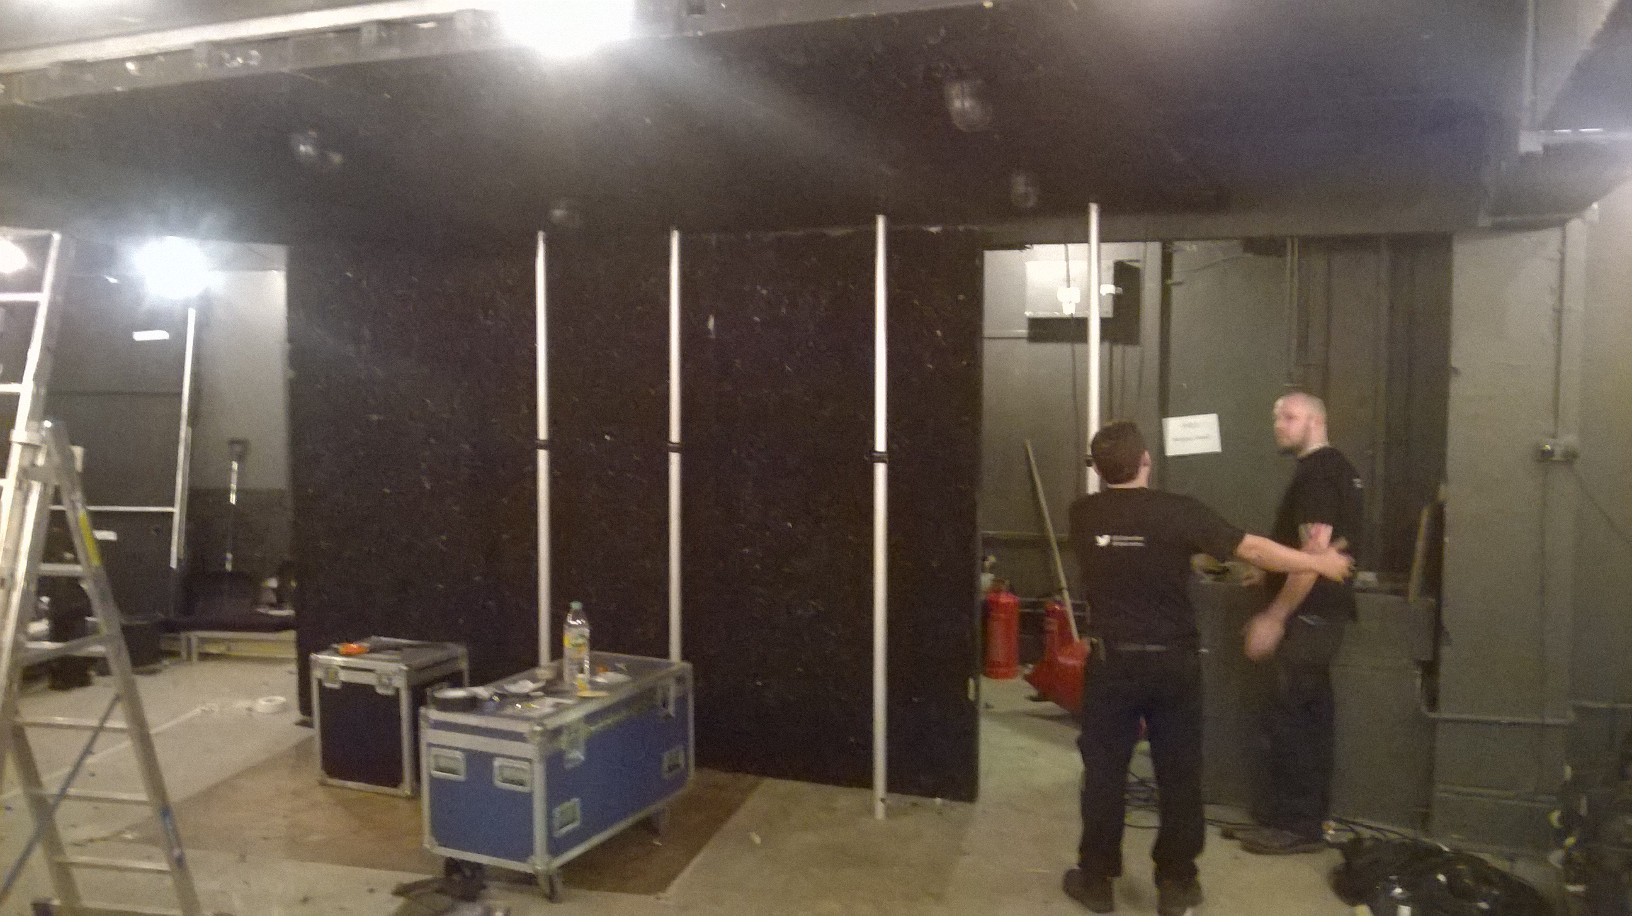 I pop by Found111, the final stop on the Land of Our Fathers national tour, to check on progress of the get in. The play is set down a mine and this space has the perfect claustrophobic atmosphere for it, but as a non-traditional space it has its challenges too. The crew are working so hard!